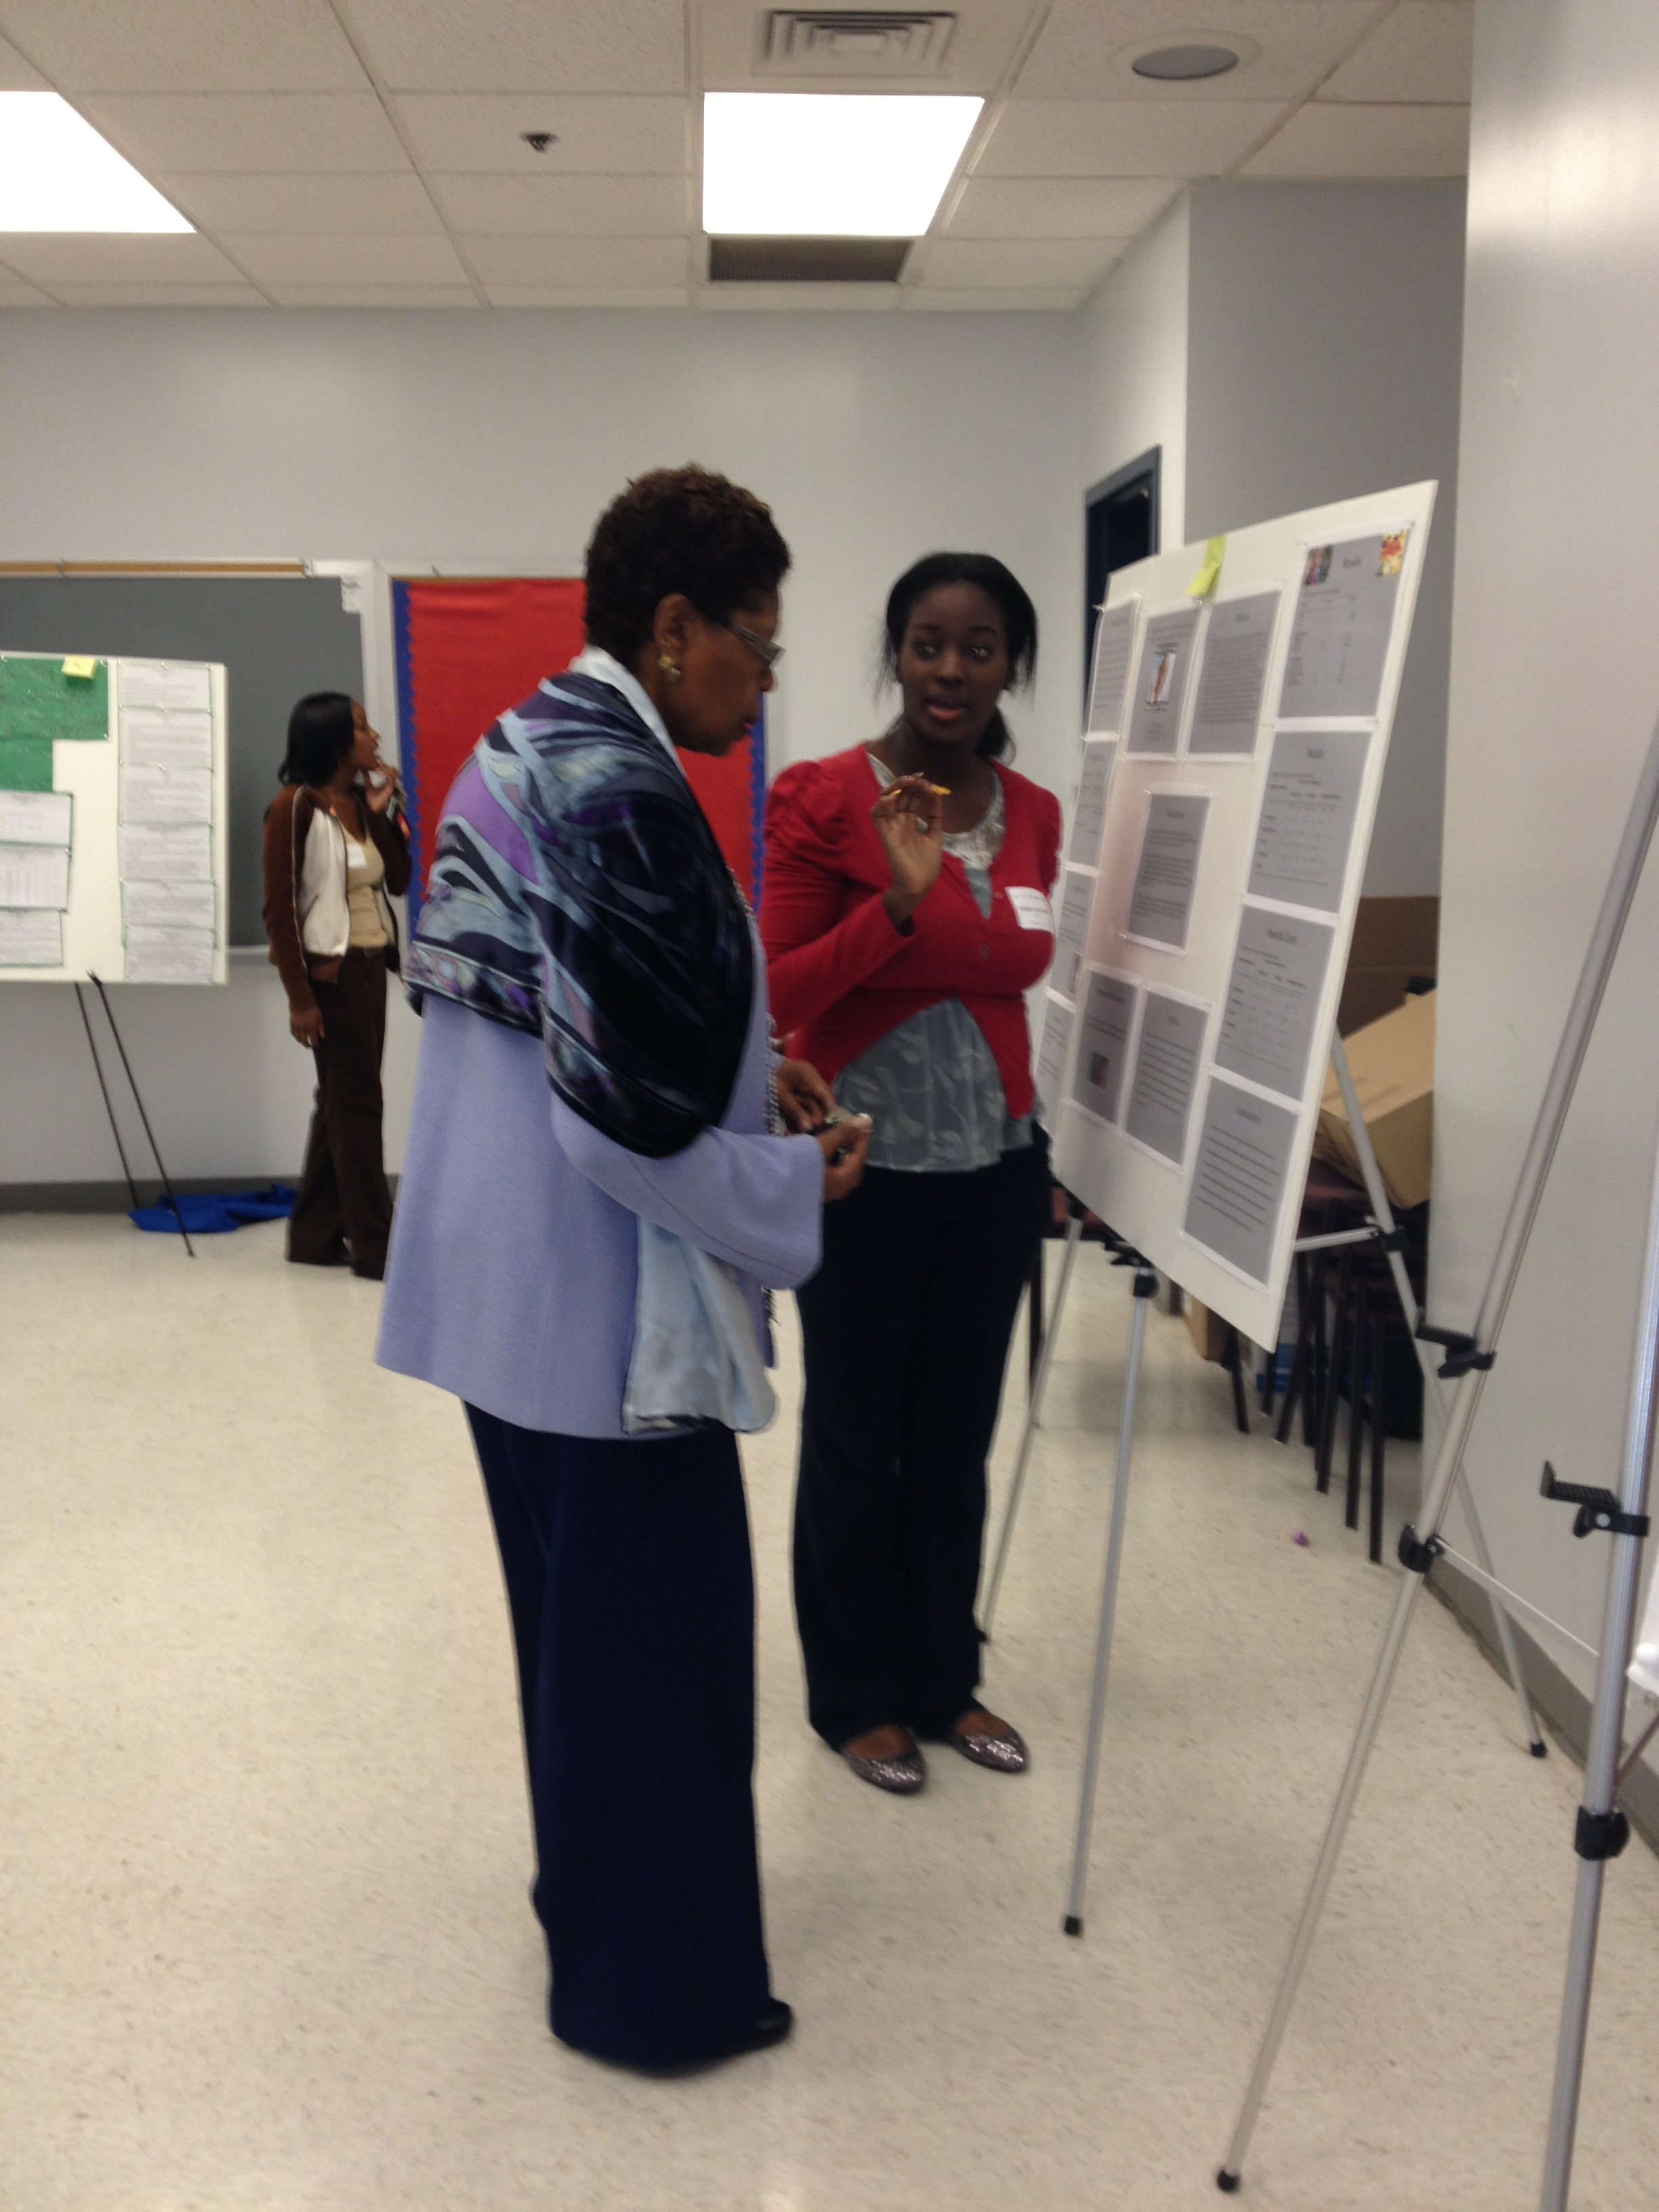 Provost attending to a student poster presentation